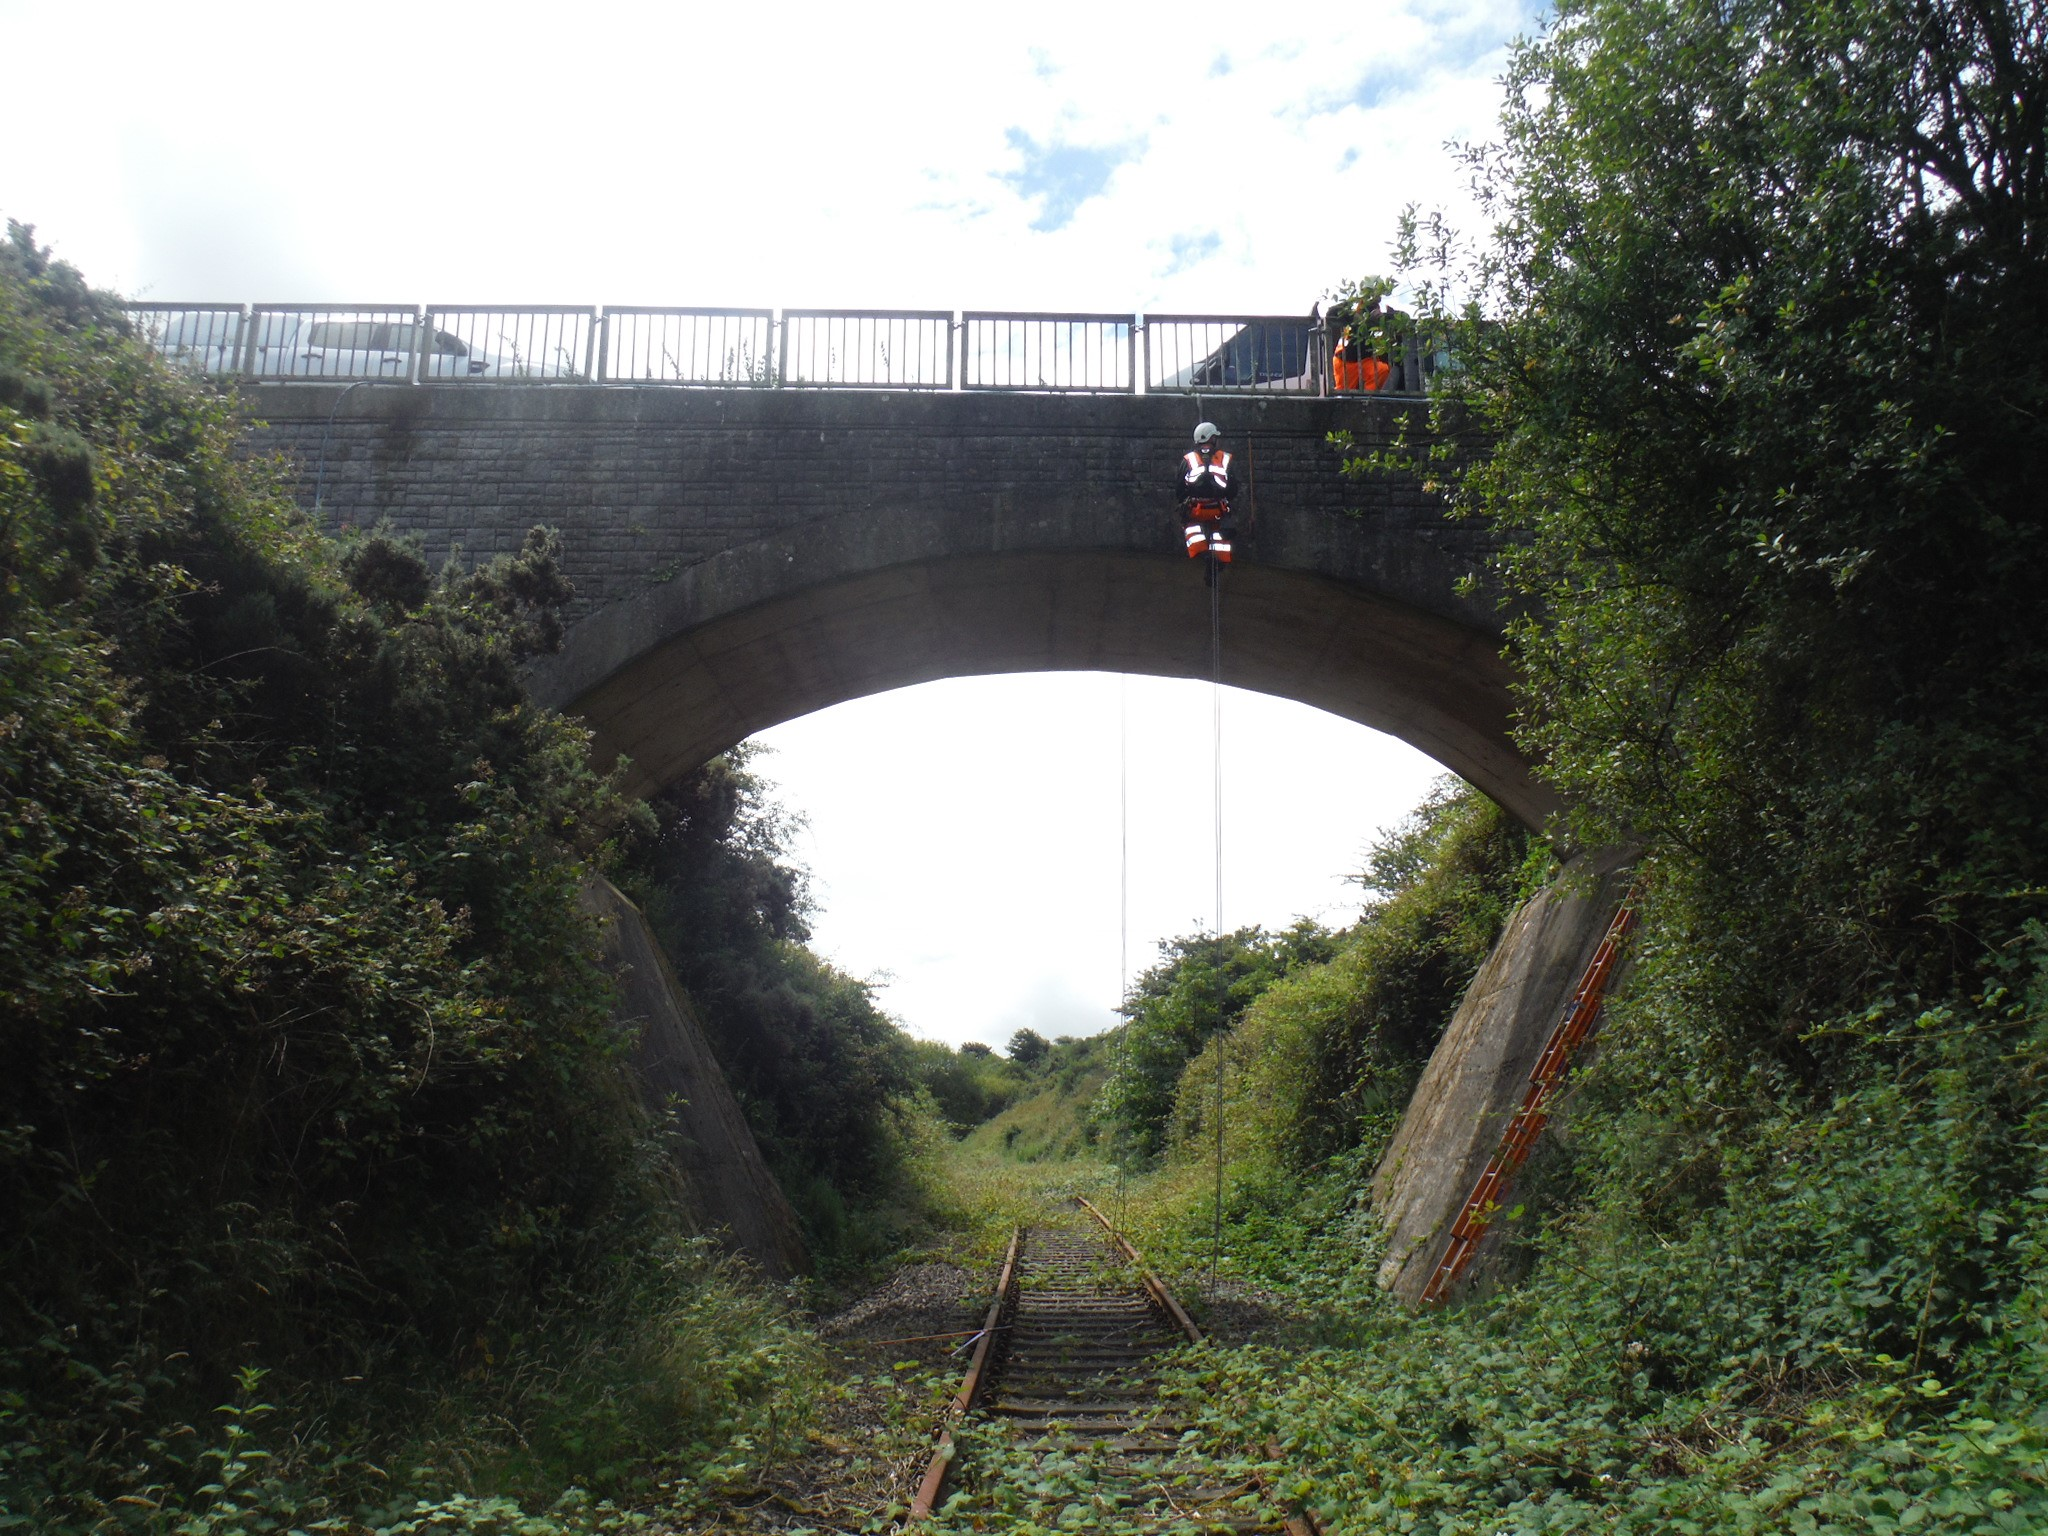 SAS Rope & Rail bridge inspections